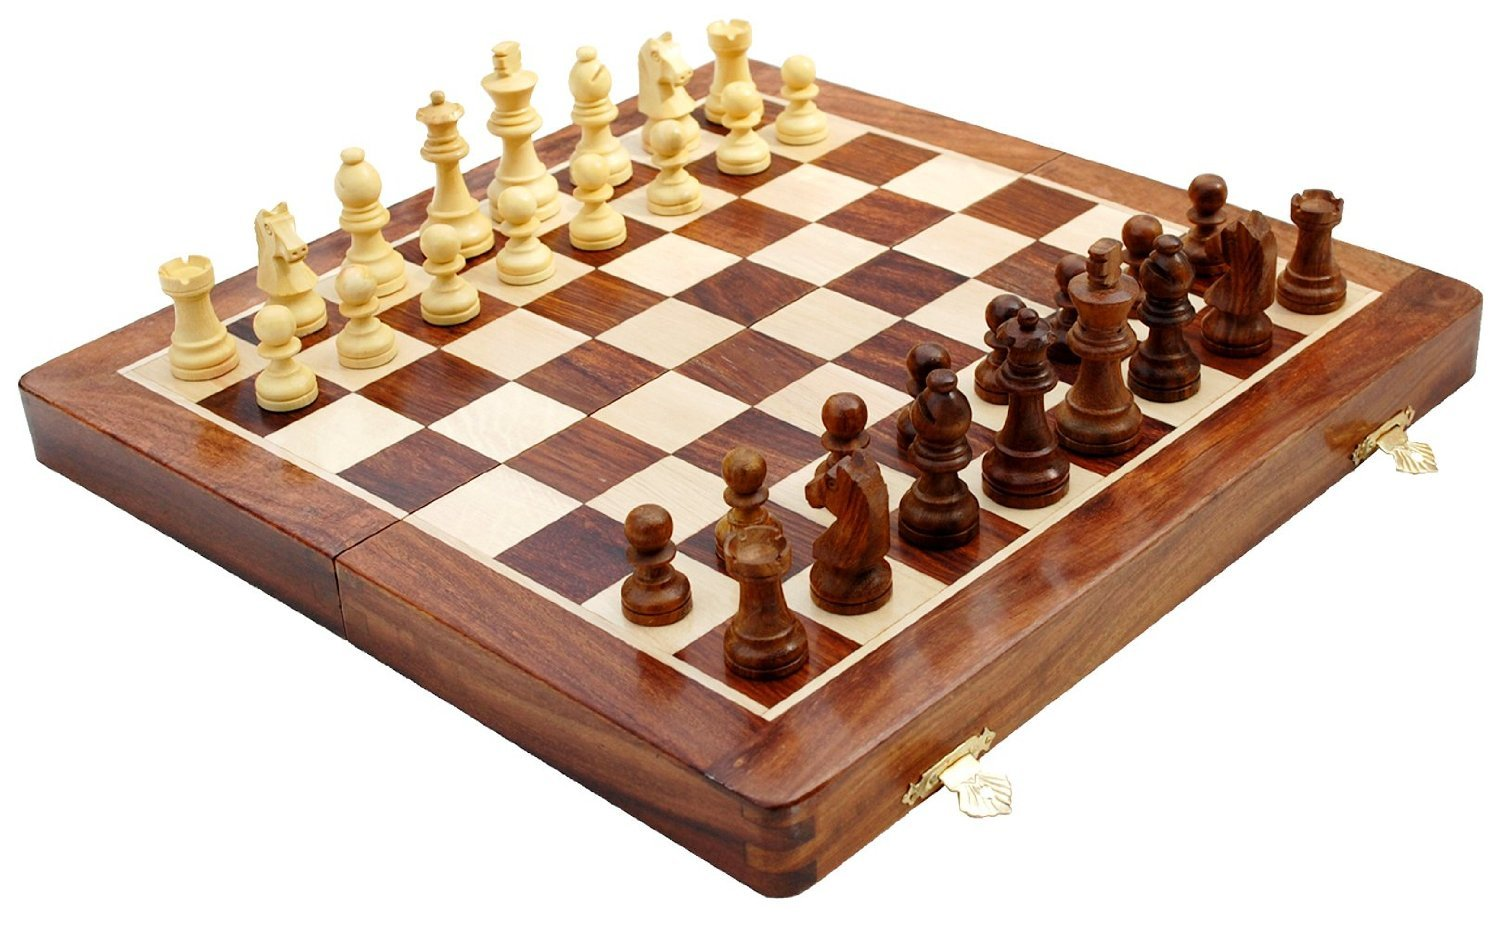 Wooden magnetic travel chess set w staunton pieces folding game board 10 39 39 ebay - Simple chess set ...